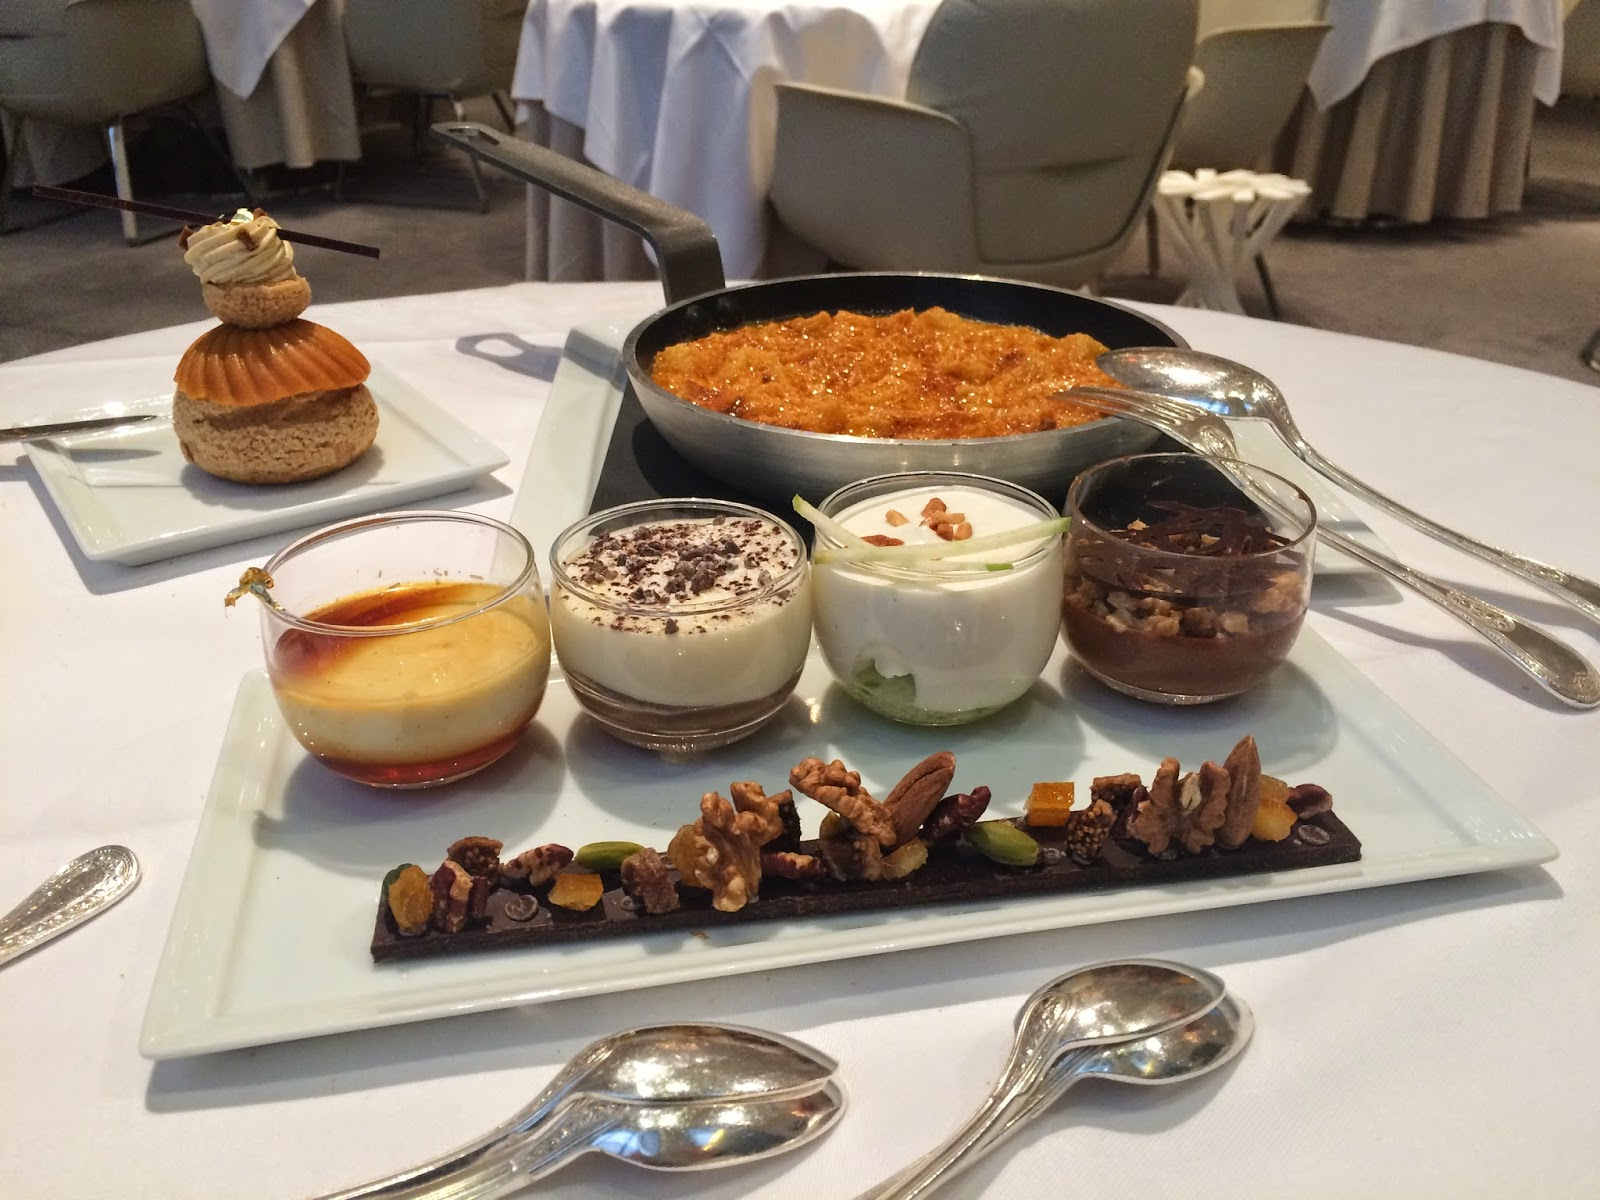 Desserts at the Haute Couture Brunch, Alain Ducasse au Plaza Athénée, Paris